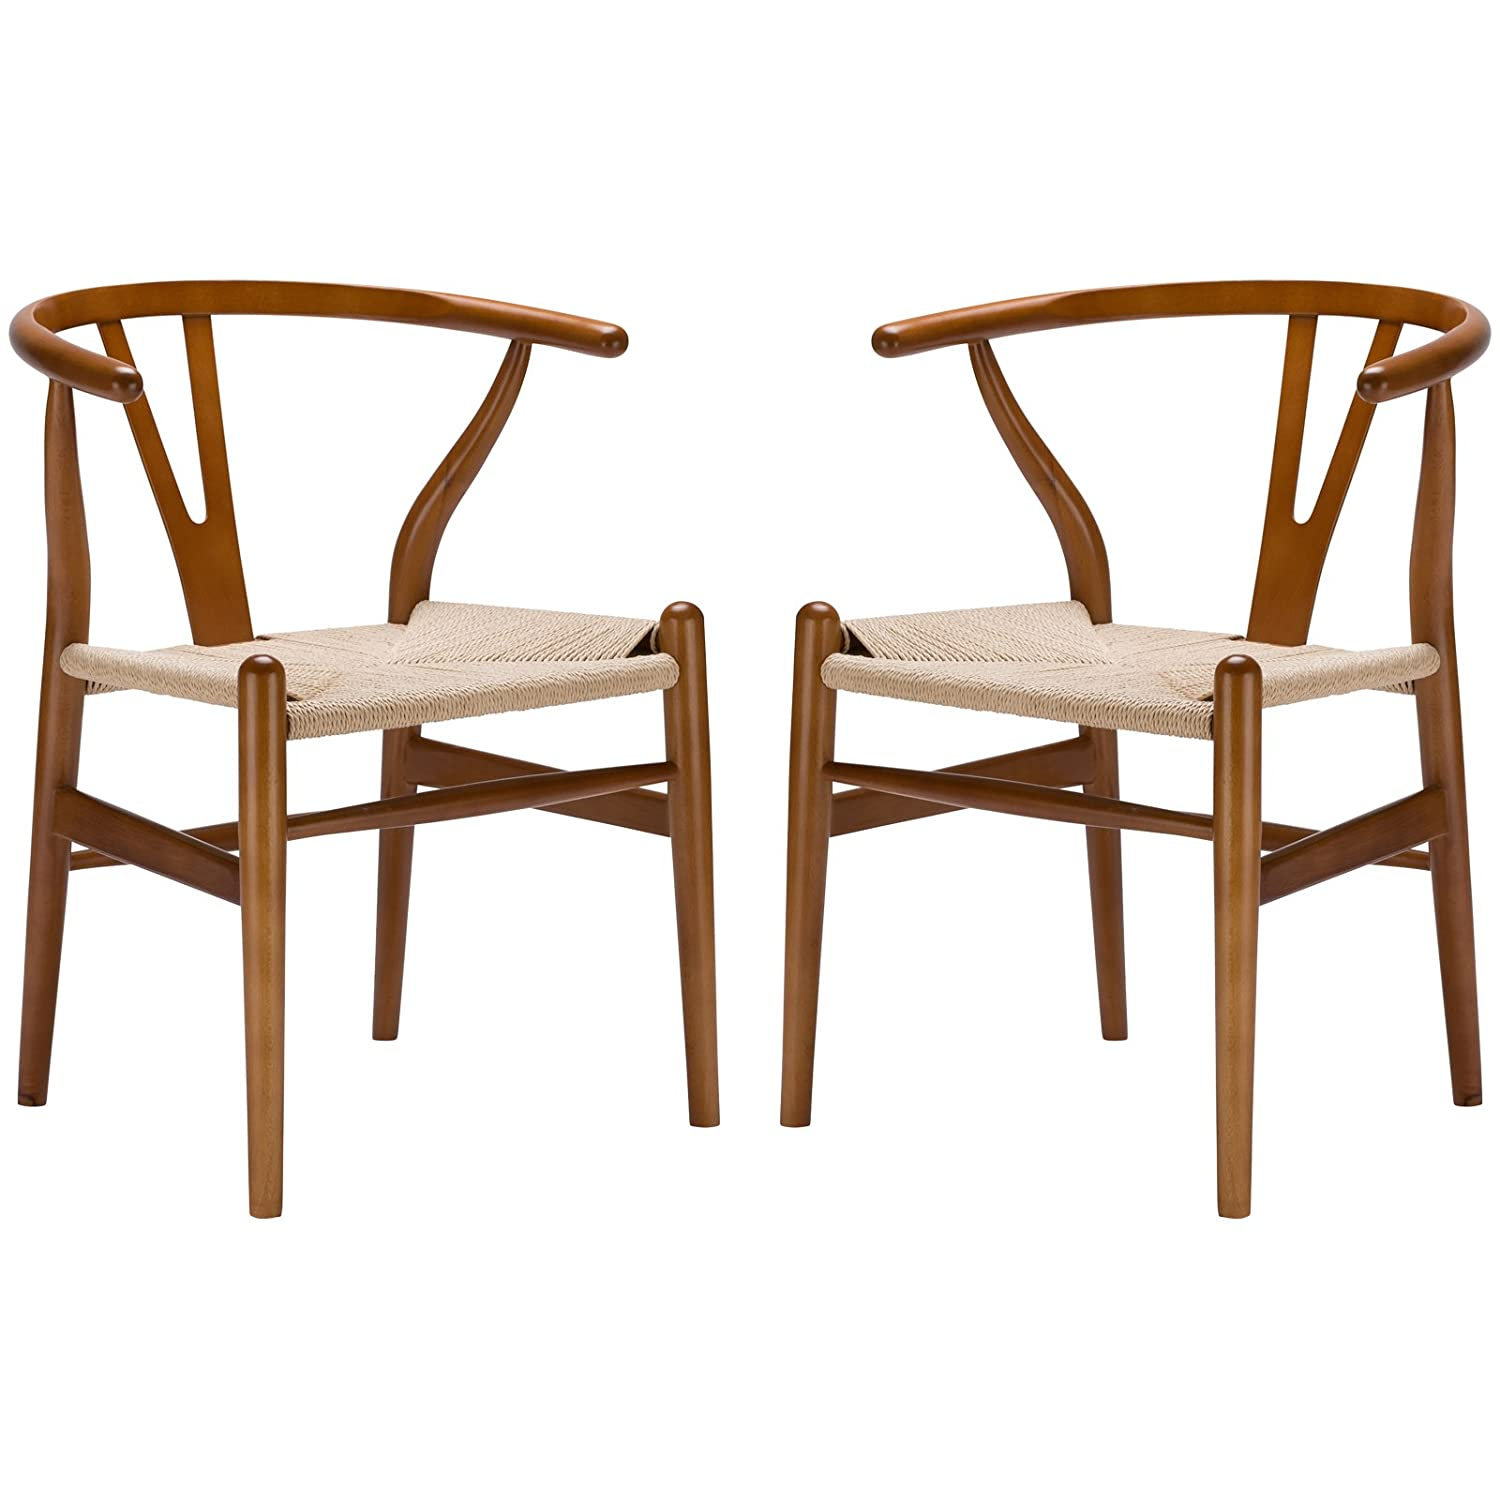 Poly and Bark Wegner Wishbone Style Chair - Walnut - Set of 2